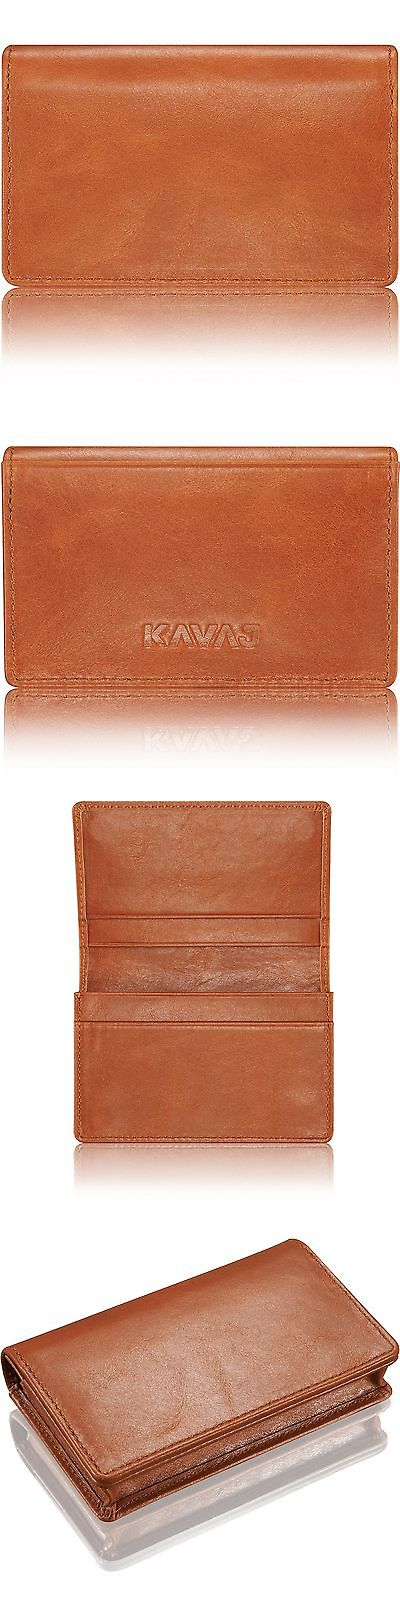 Business and Credit Card Cases 105860: Cognac Brown Leather ...